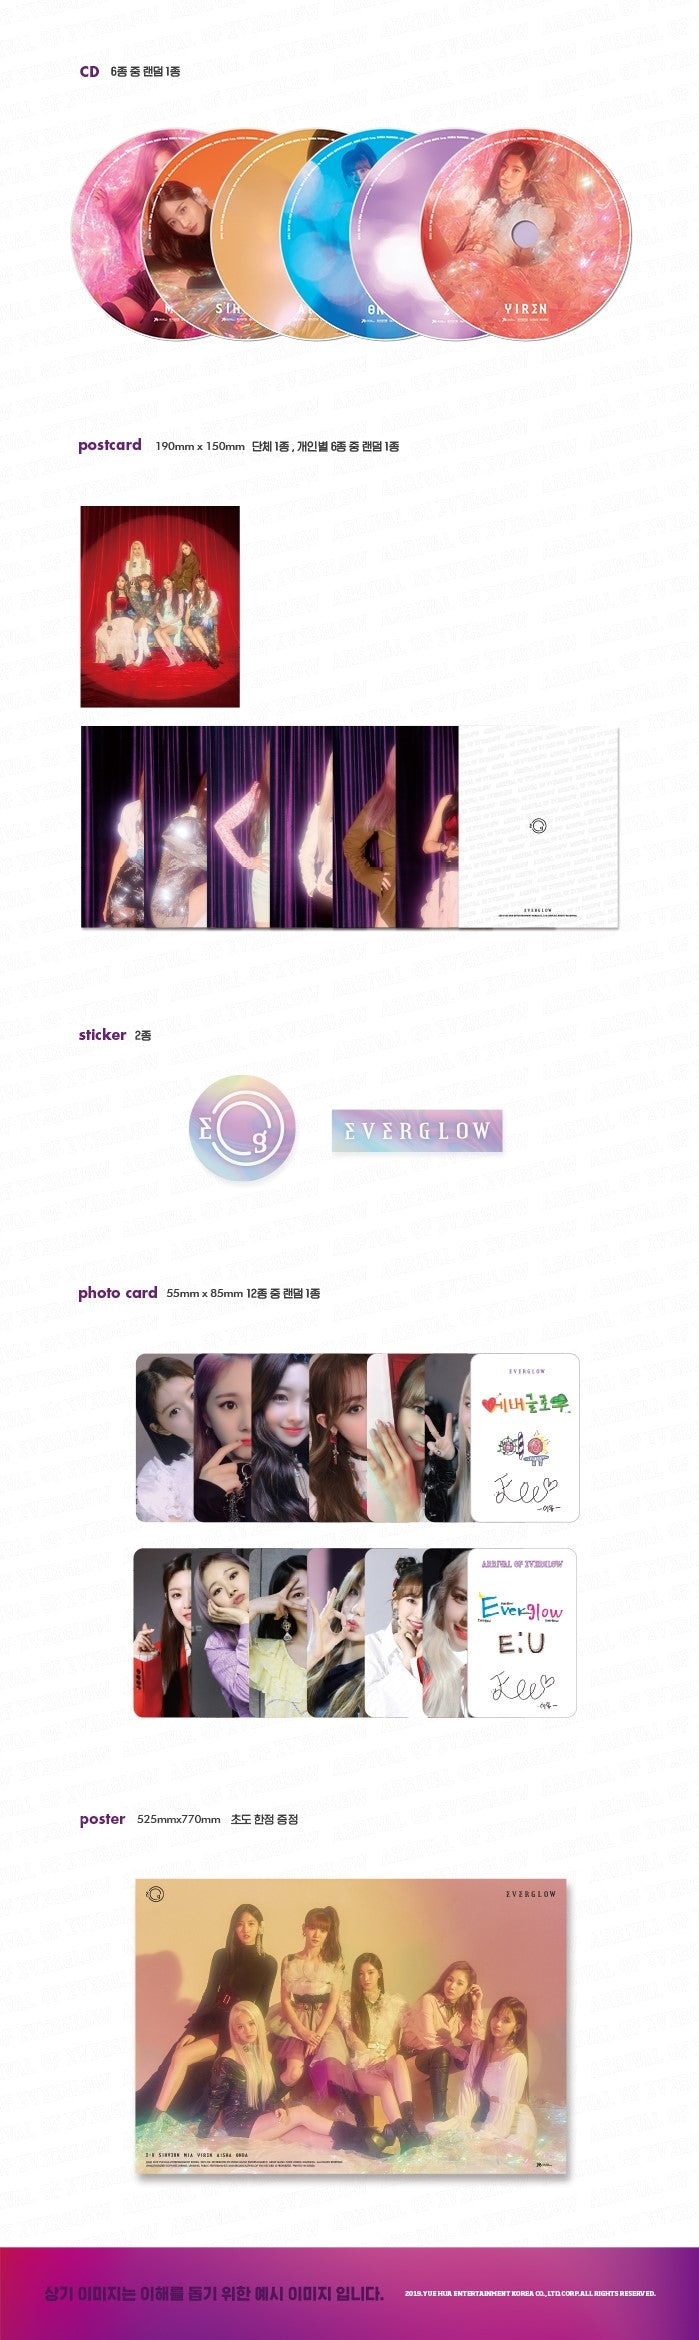 Everglow - Arrival of Everglow - J-Store Online